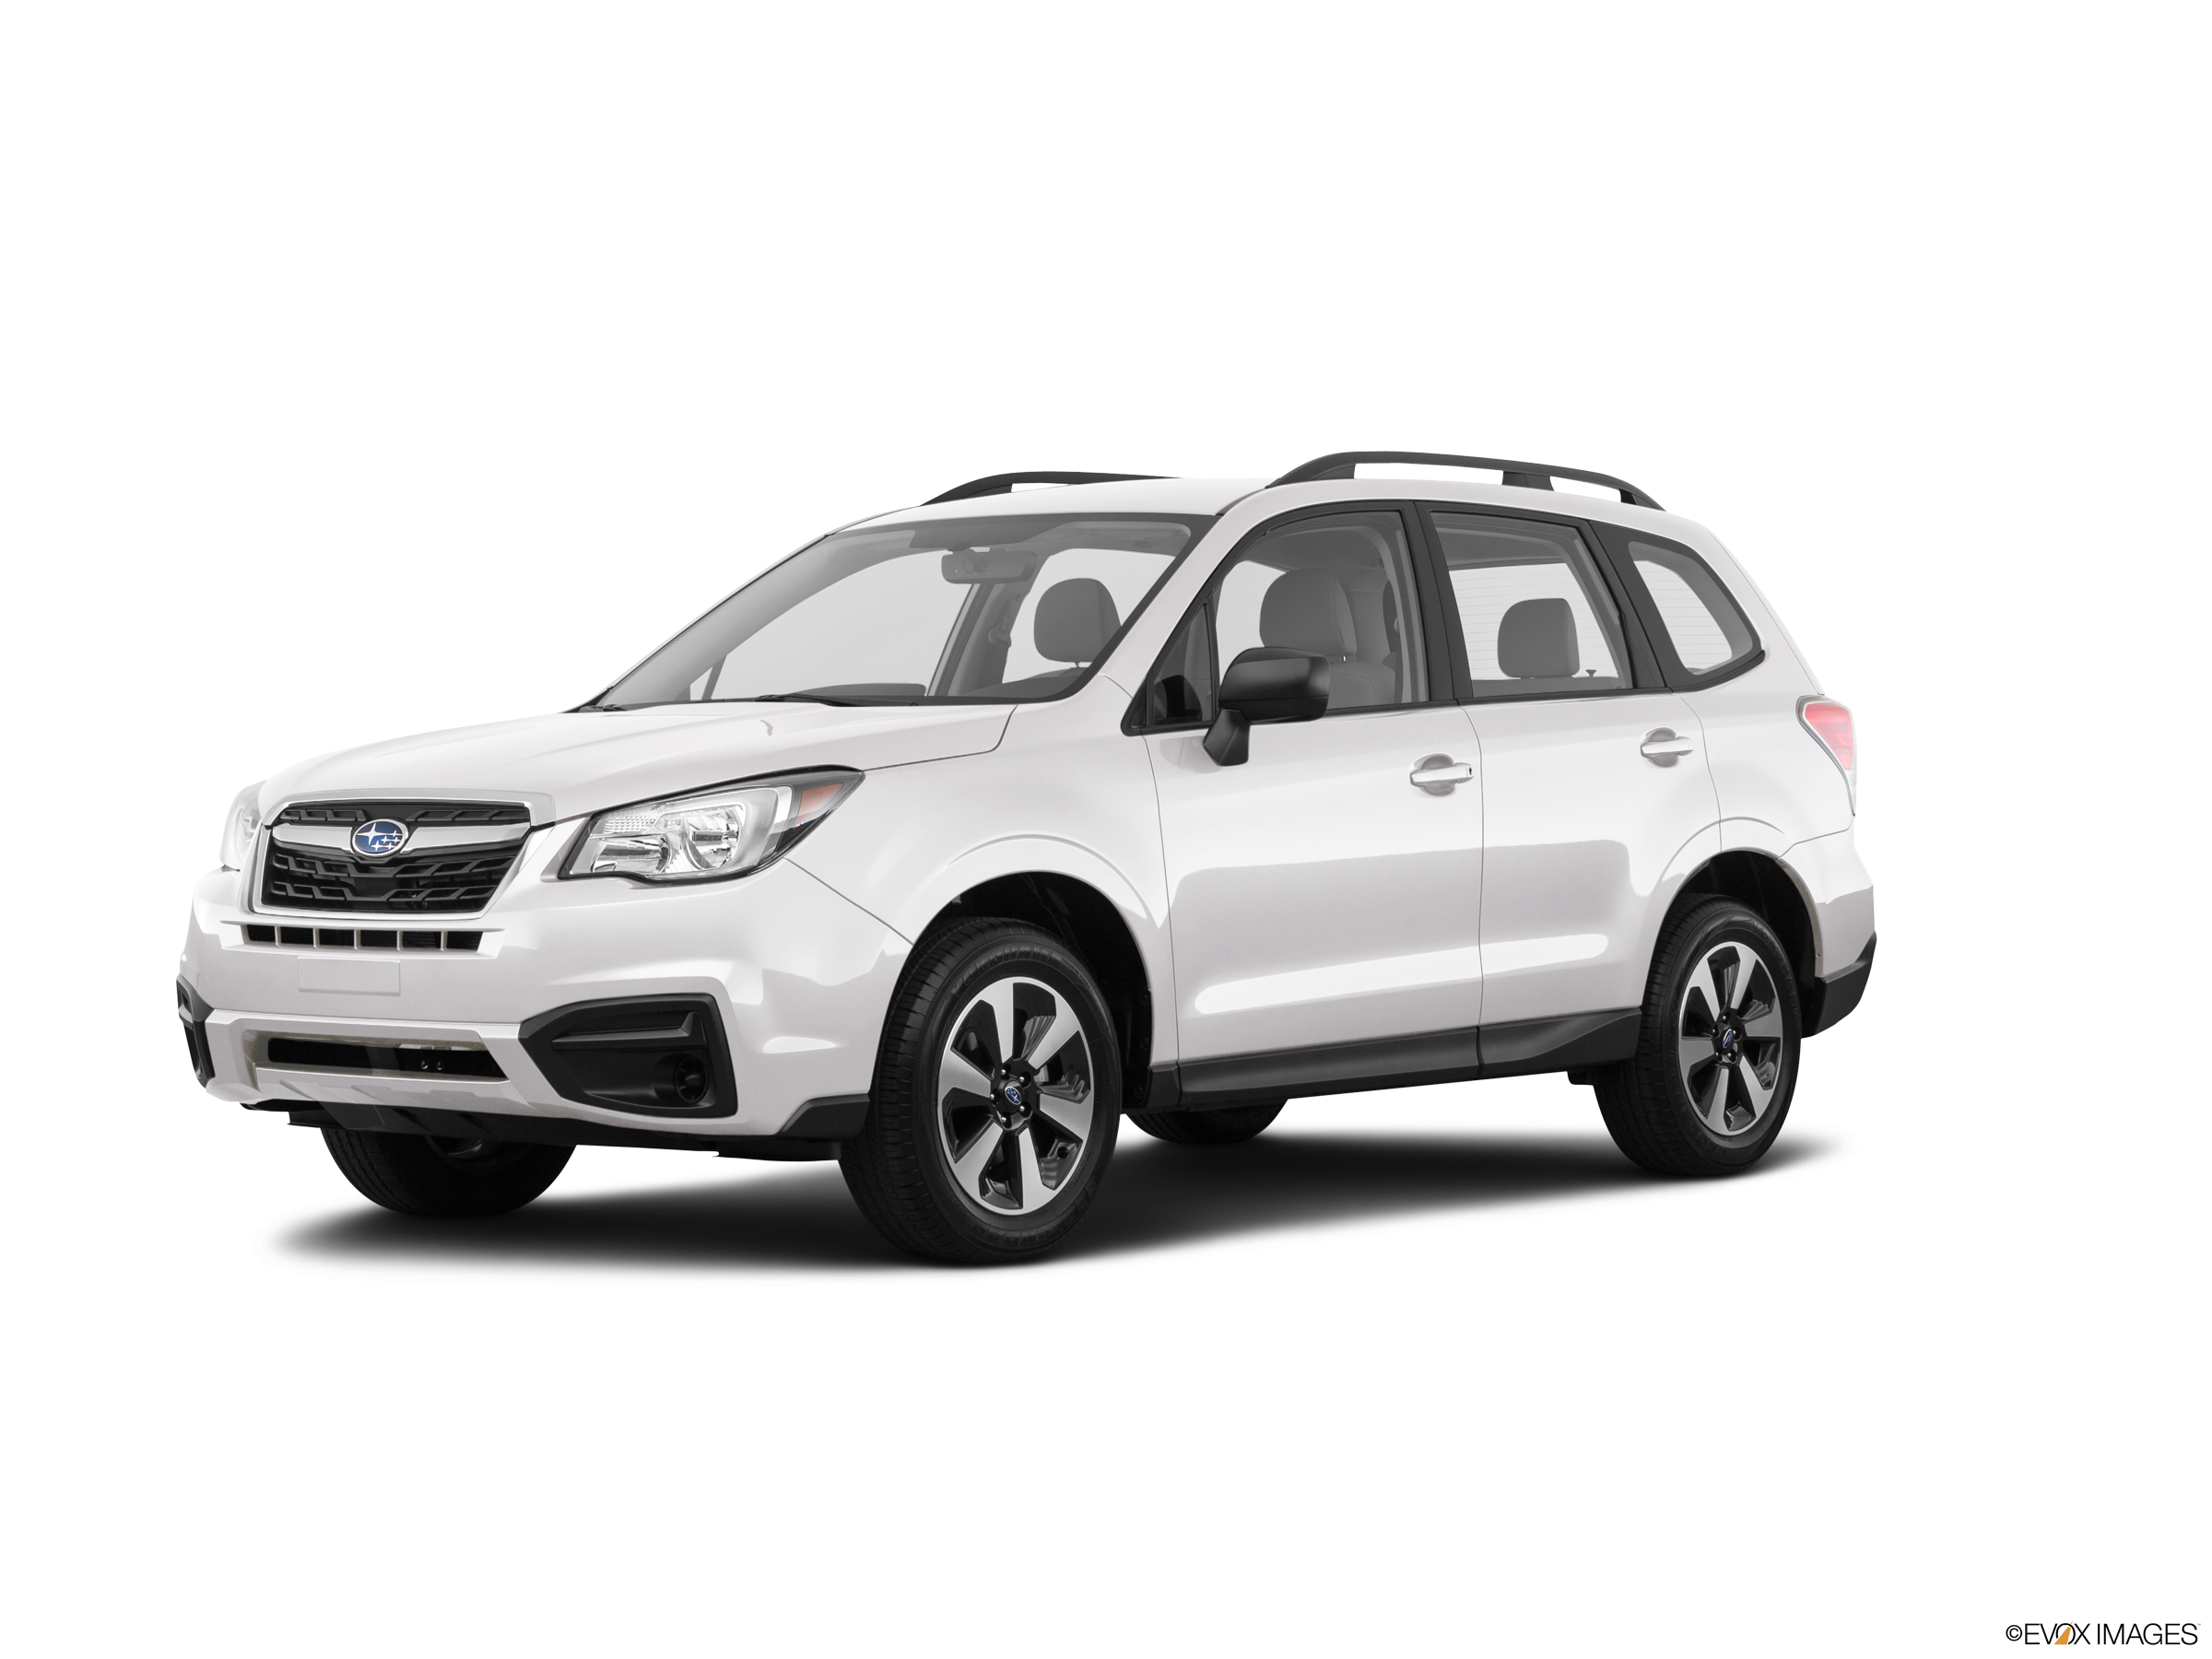 25 Best-Selling SUVs of 2018 - Subaru Forester